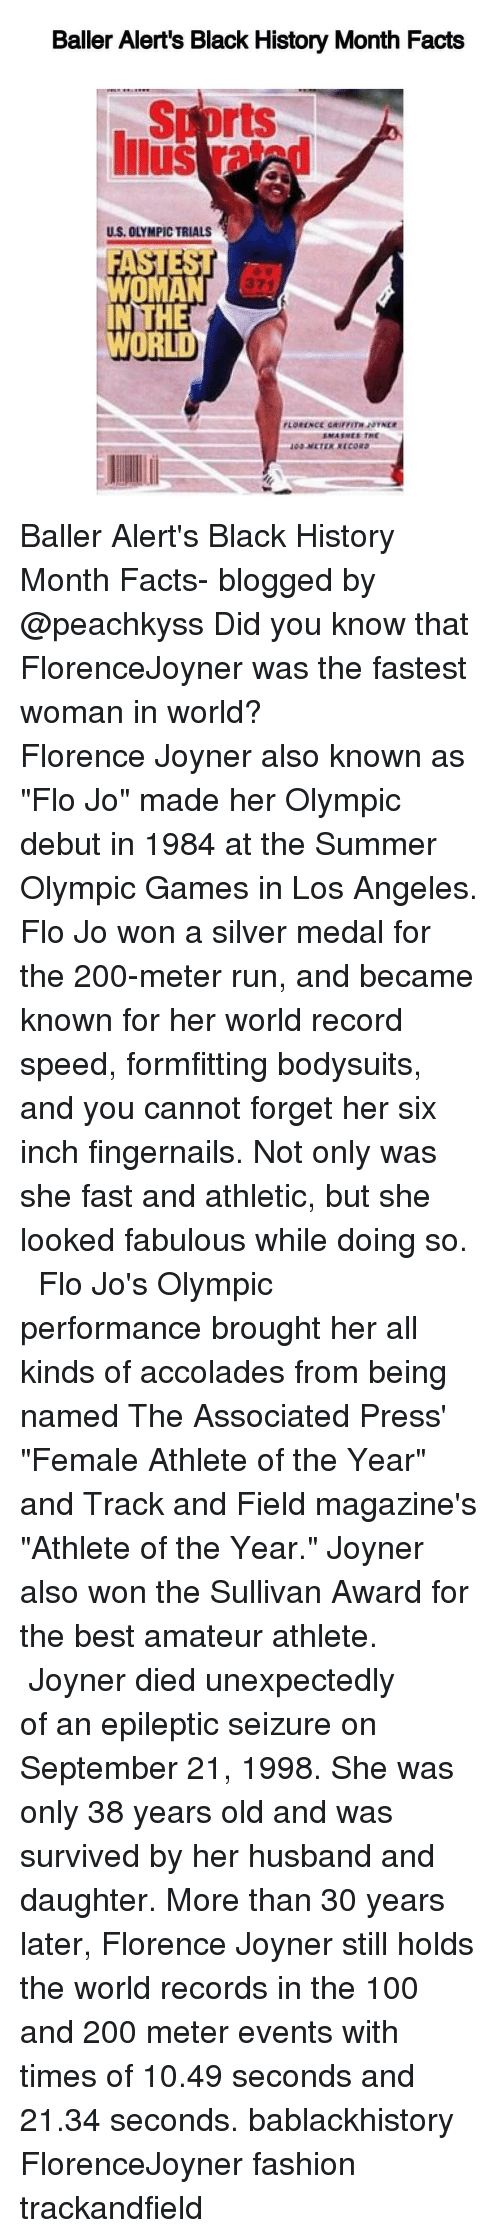 "female athletes: Baller Alert's Black History Month Facts  rts  US, OLYMPICTRIALS  HE  WORLD Baller Alert's Black History Month Facts- blogged by @peachkyss Did you know that FlorenceJoyner was the fastest woman in world? ⠀⠀⠀⠀⠀⠀⠀⠀⠀ ⠀⠀⠀⠀⠀⠀⠀⠀⠀ Florence Joyner also known as ""Flo Jo"" made her Olympic debut in 1984 at the Summer Olympic Games in Los Angeles. Flo Jo won a silver medal for the 200-meter run, and became known for her world record speed, formfitting bodysuits, and you cannot forget her six inch fingernails. Not only was she fast and athletic, but she looked fabulous while doing so. ⠀⠀⠀⠀⠀⠀⠀⠀⠀ ⠀⠀⠀⠀⠀⠀⠀⠀⠀ Flo Jo's Olympic performance brought her all kinds of accolades from being named The Associated Press' ""Female Athlete of the Year"" and Track and Field magazine's ""Athlete of the Year."" Joyner also won the Sullivan Award for the best amateur athlete. ⠀⠀⠀⠀⠀⠀⠀⠀⠀ ⠀⠀⠀⠀⠀⠀⠀⠀⠀ Joyner died unexpectedly of an epileptic seizure on September 21, 1998. She was only 38 years old and was survived by her husband and daughter. More than 30 years later, Florence Joyner still holds the world records in the 100 and 200 meter events with times of 10.49 seconds and 21.34 seconds. bablackhistory FlorenceJoyner fashion trackandfield"